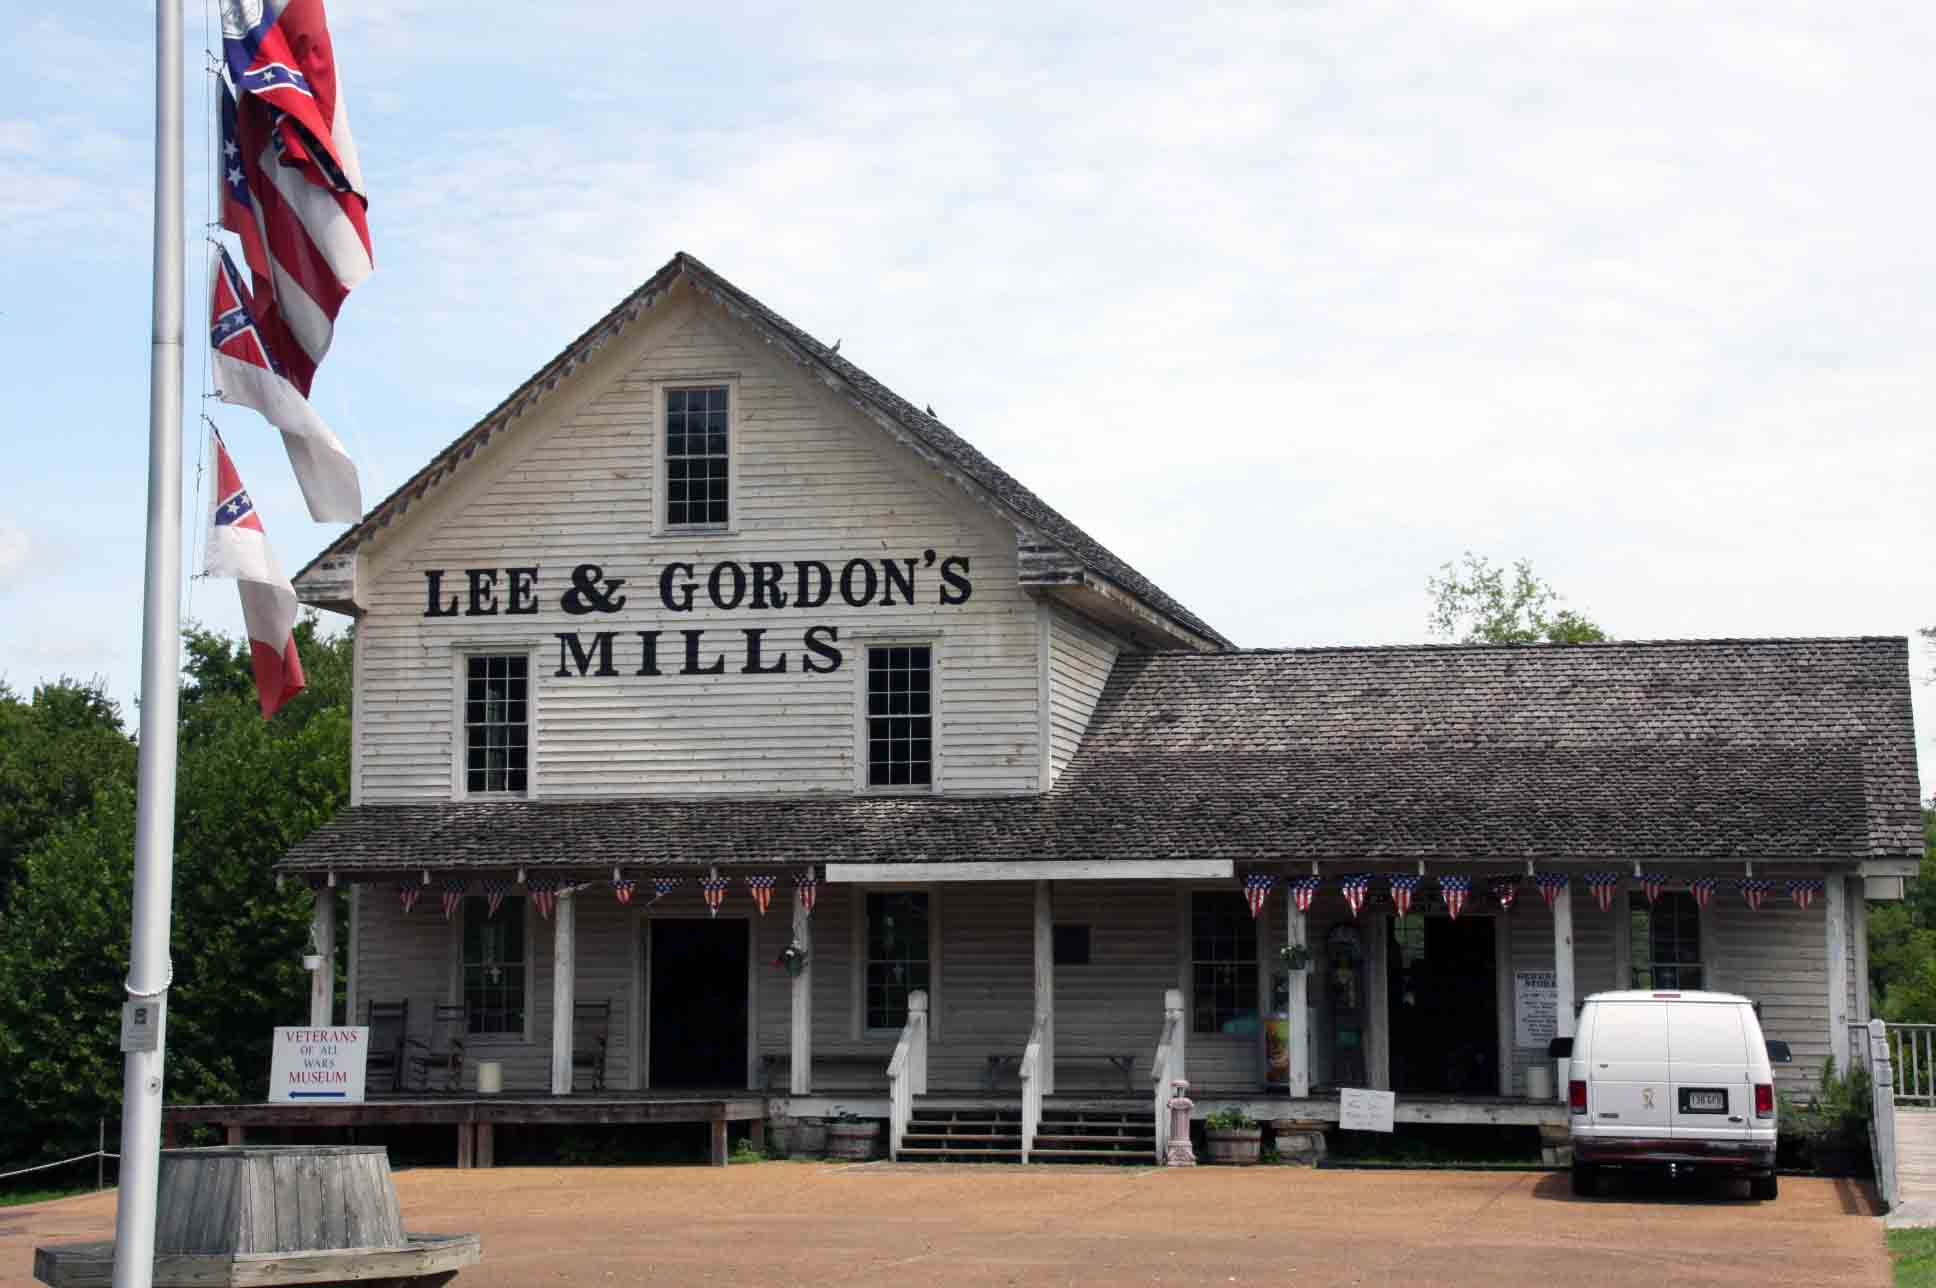 Lee and Gordon's Mill, click photo to enlarge.